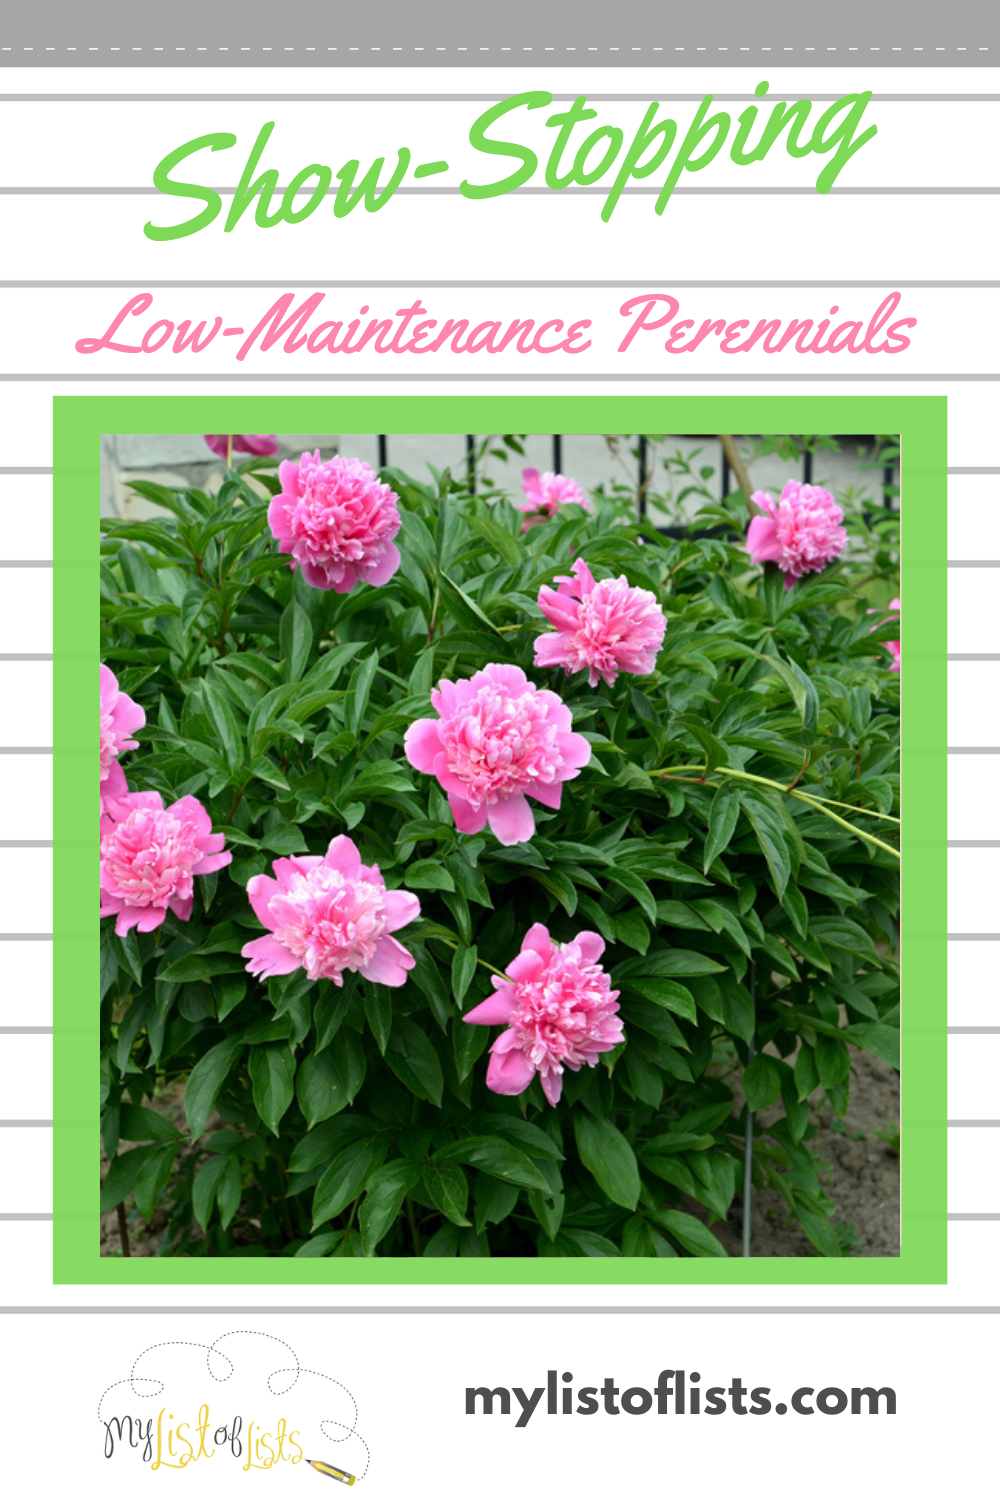 Low maintenance perennials are the way to go when landscaping. Like other perennials, they return each year filling your yard with color and texture but they require very little in care. If you like lush landscaping, but not so much the work involved in maintaining it, read this post for a list of perennials that will become your best friends. #landscapeideas #perennials #lowmaintenanceperennials